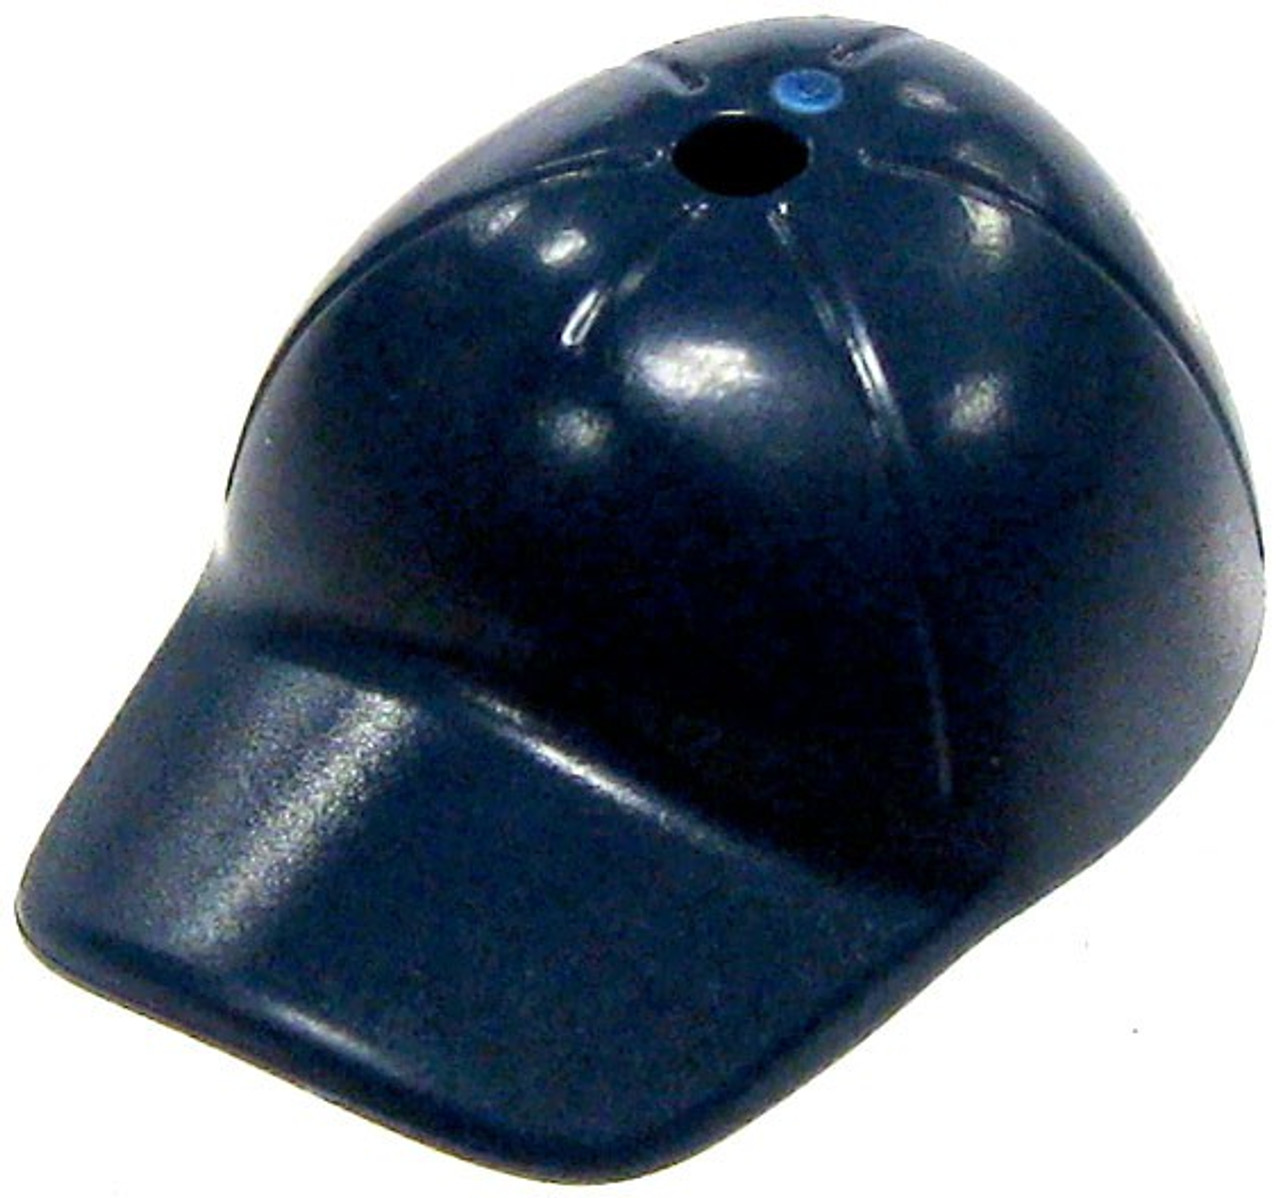 c9e26f4b581 LEGO LEGO Minifigure Parts Dark Blue Baseball Cap with Hole in Top Loose -  ToyWiz